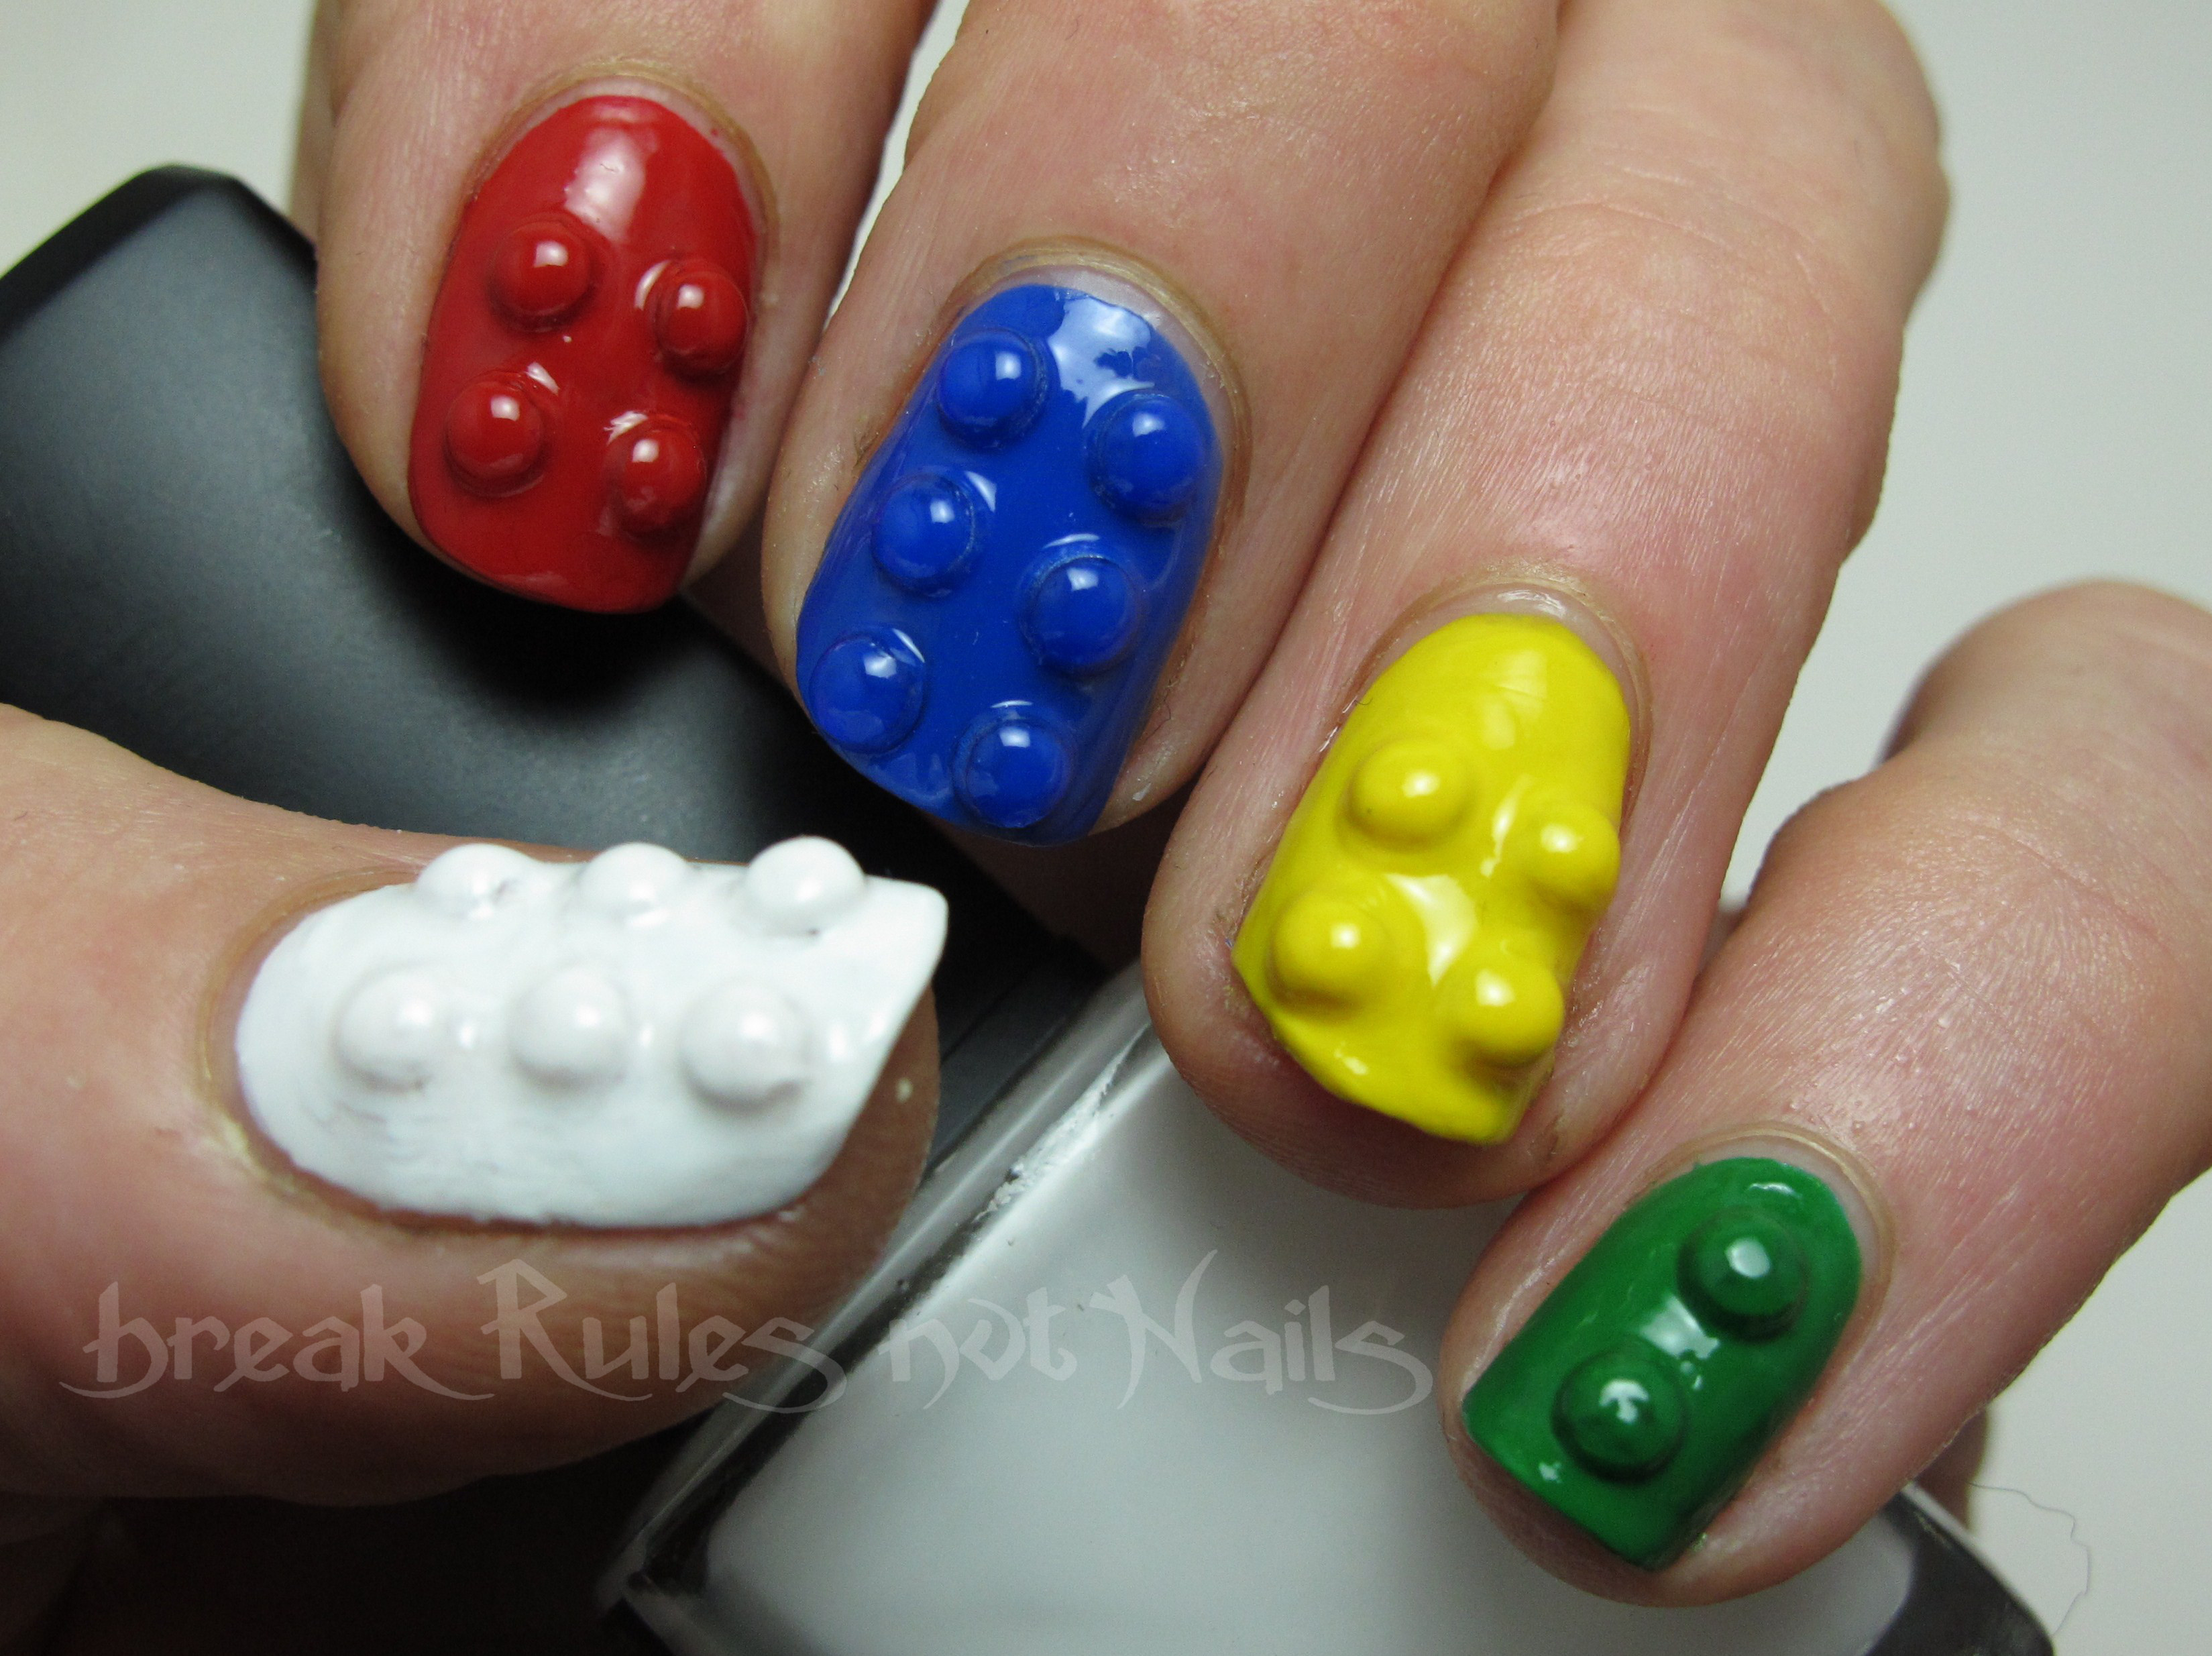 Lego nails…. | Break rules, not nails